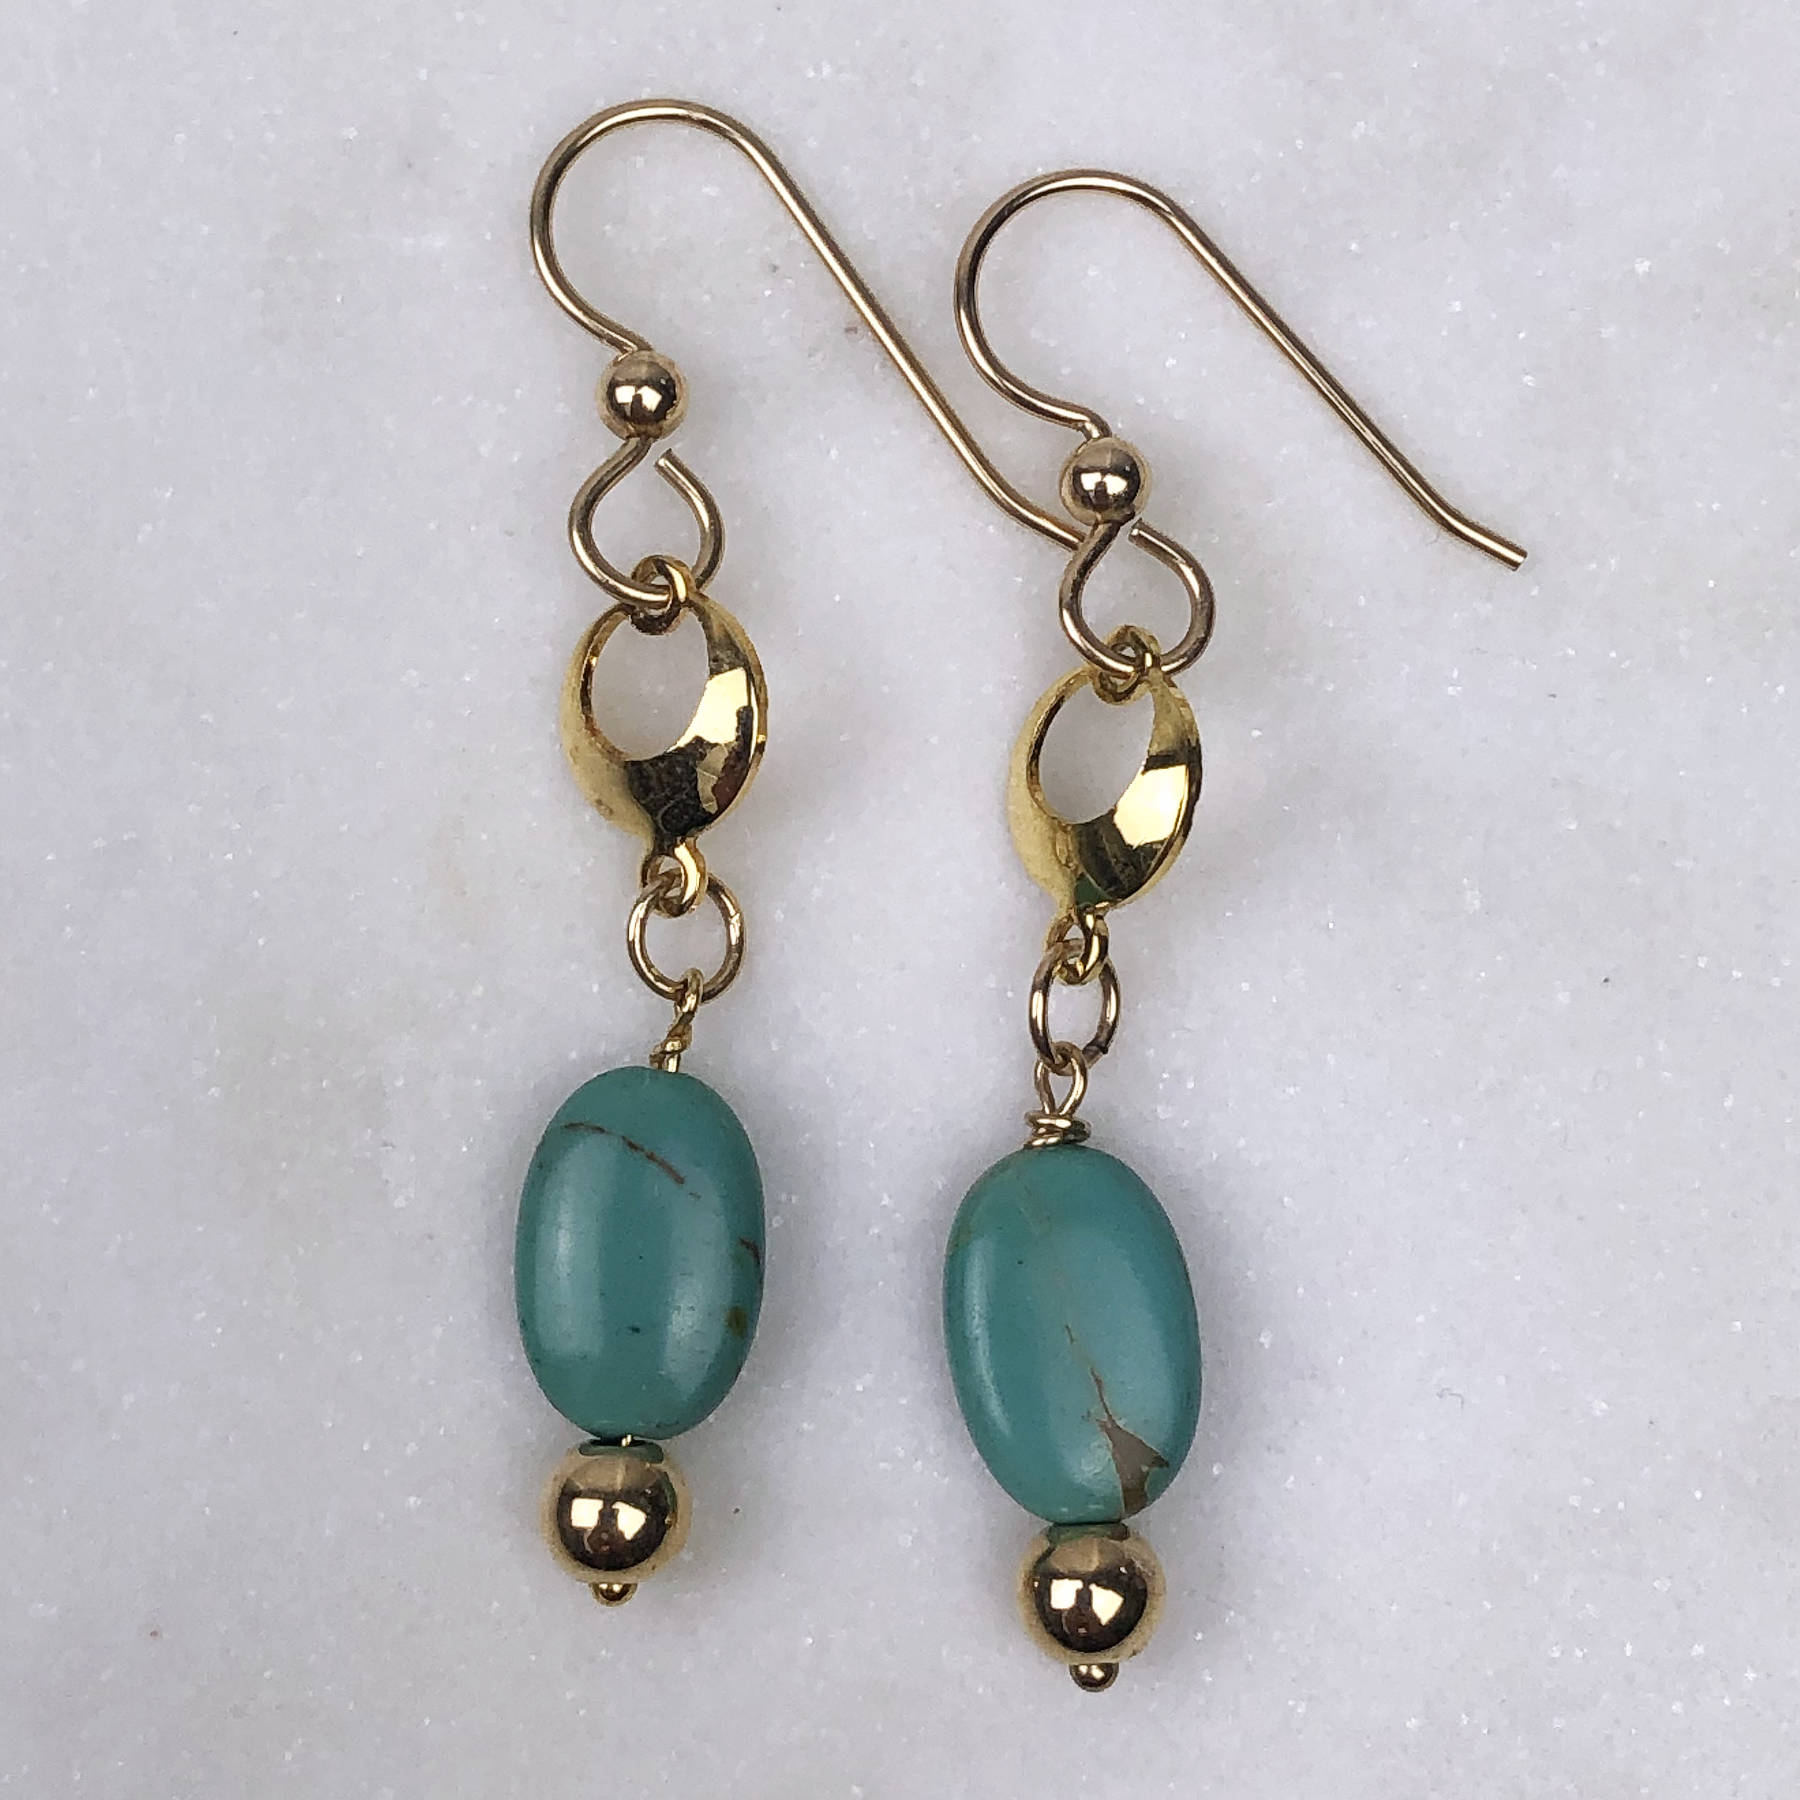 Turquoise Crescent Earrings | Well-Being, Balance